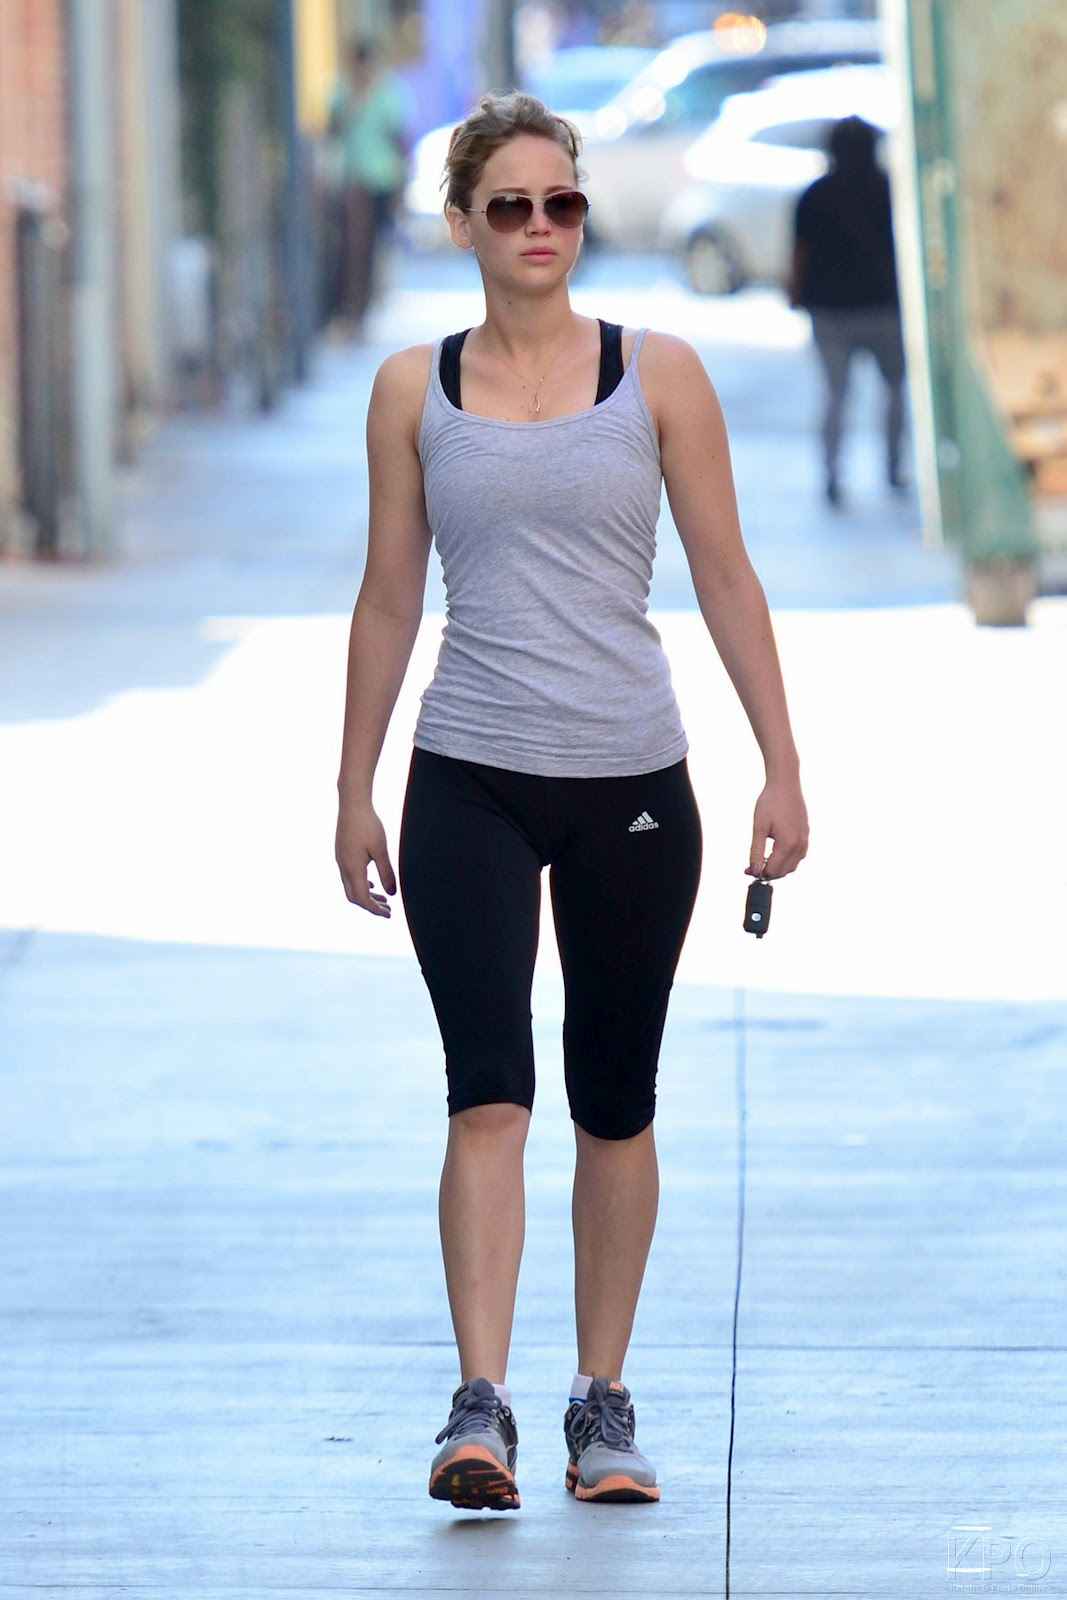 http://2.bp.blogspot.com/-kEY3OPAyFvA/UEdaosNoGCI/AAAAAAAAIZA/bEK8Si7gRUk/s1600/jennifer_lawrence_heading_to_the_gym_in_santa_monica_august_13_2012__z2cBXWb.jpg